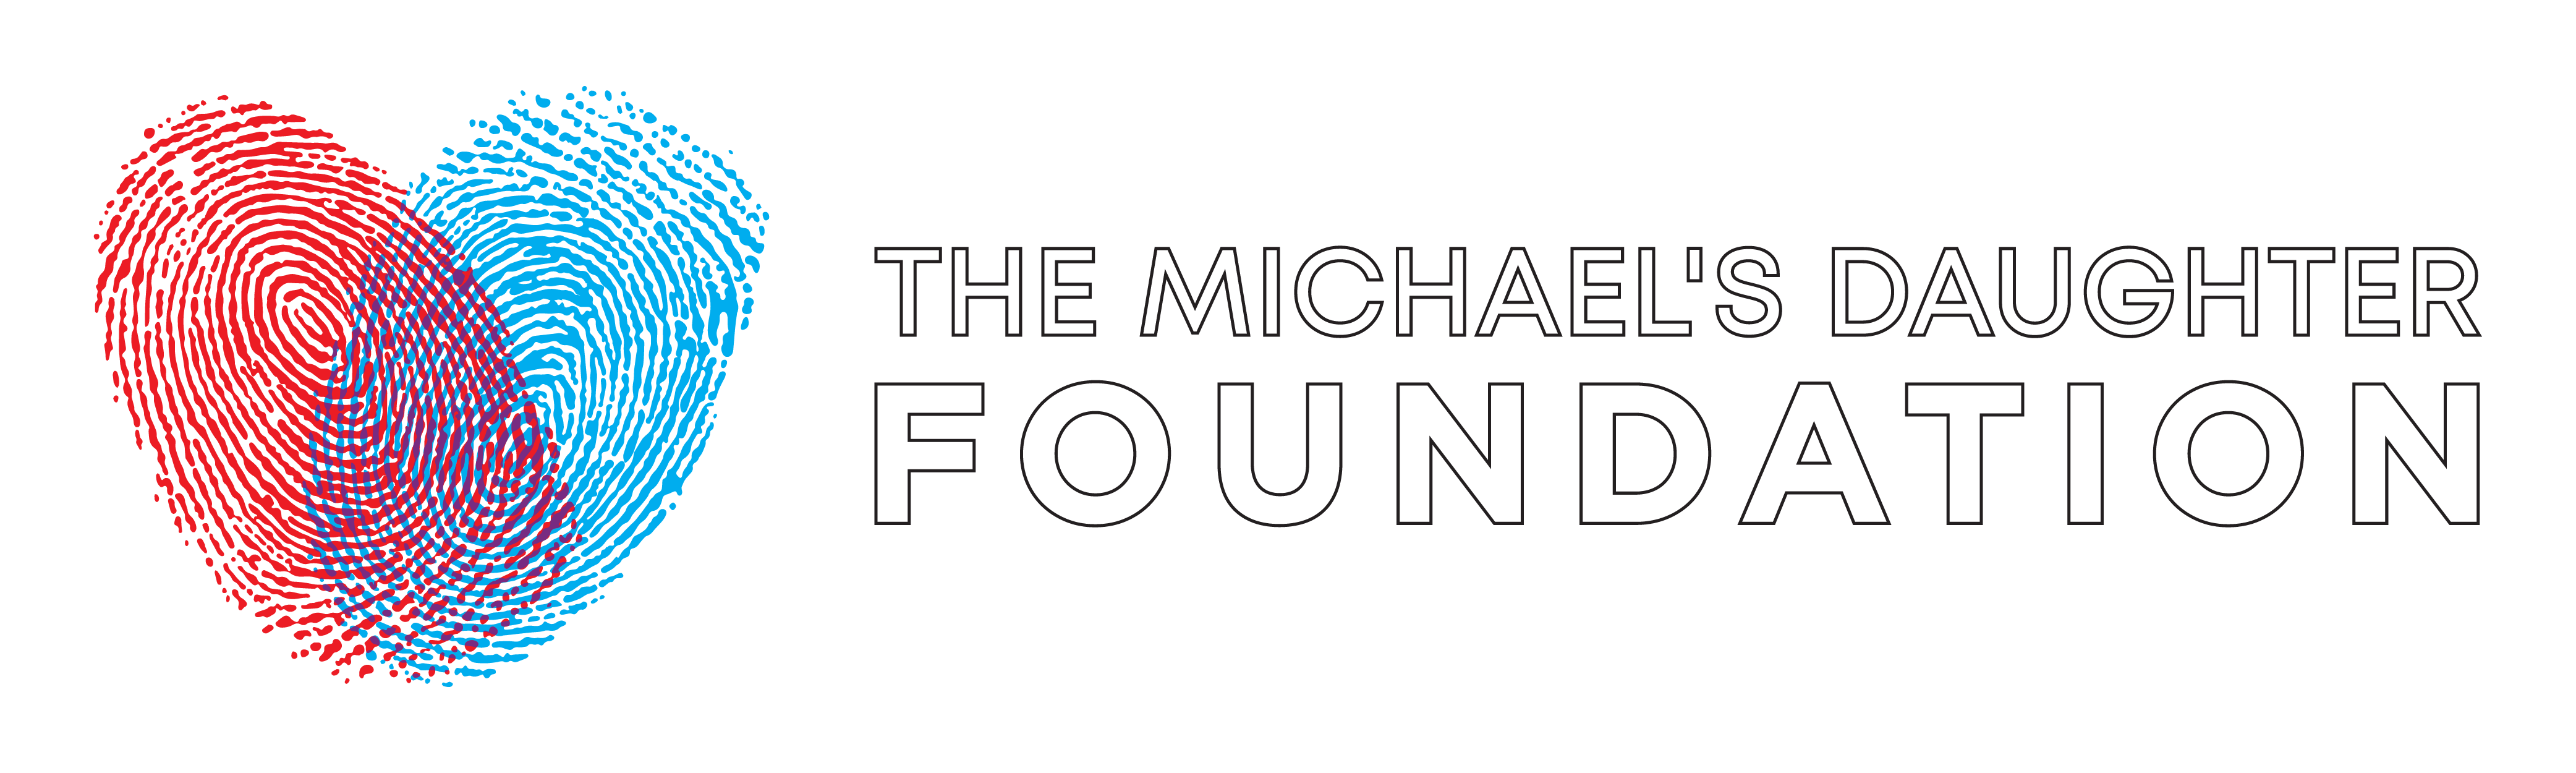 The Michael's Daughter Foundation